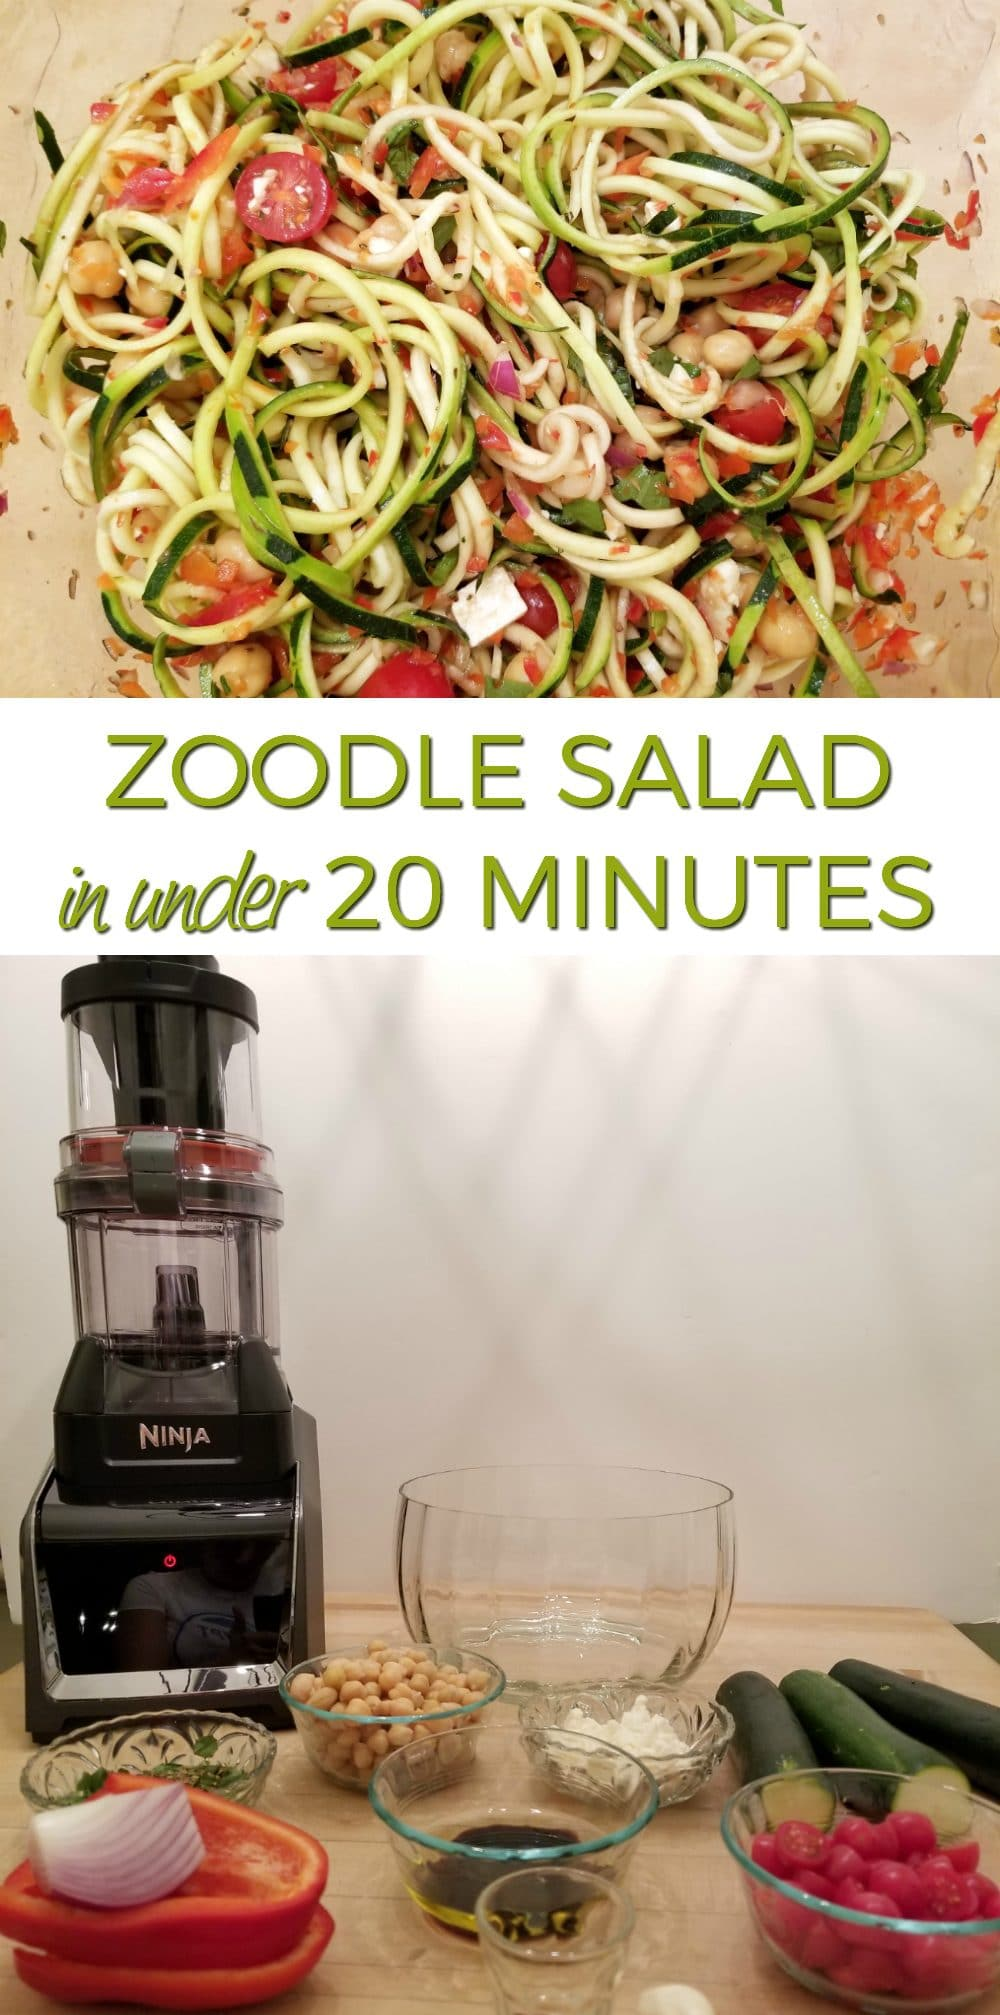 Blender for Smoothies and Zoodle Salad